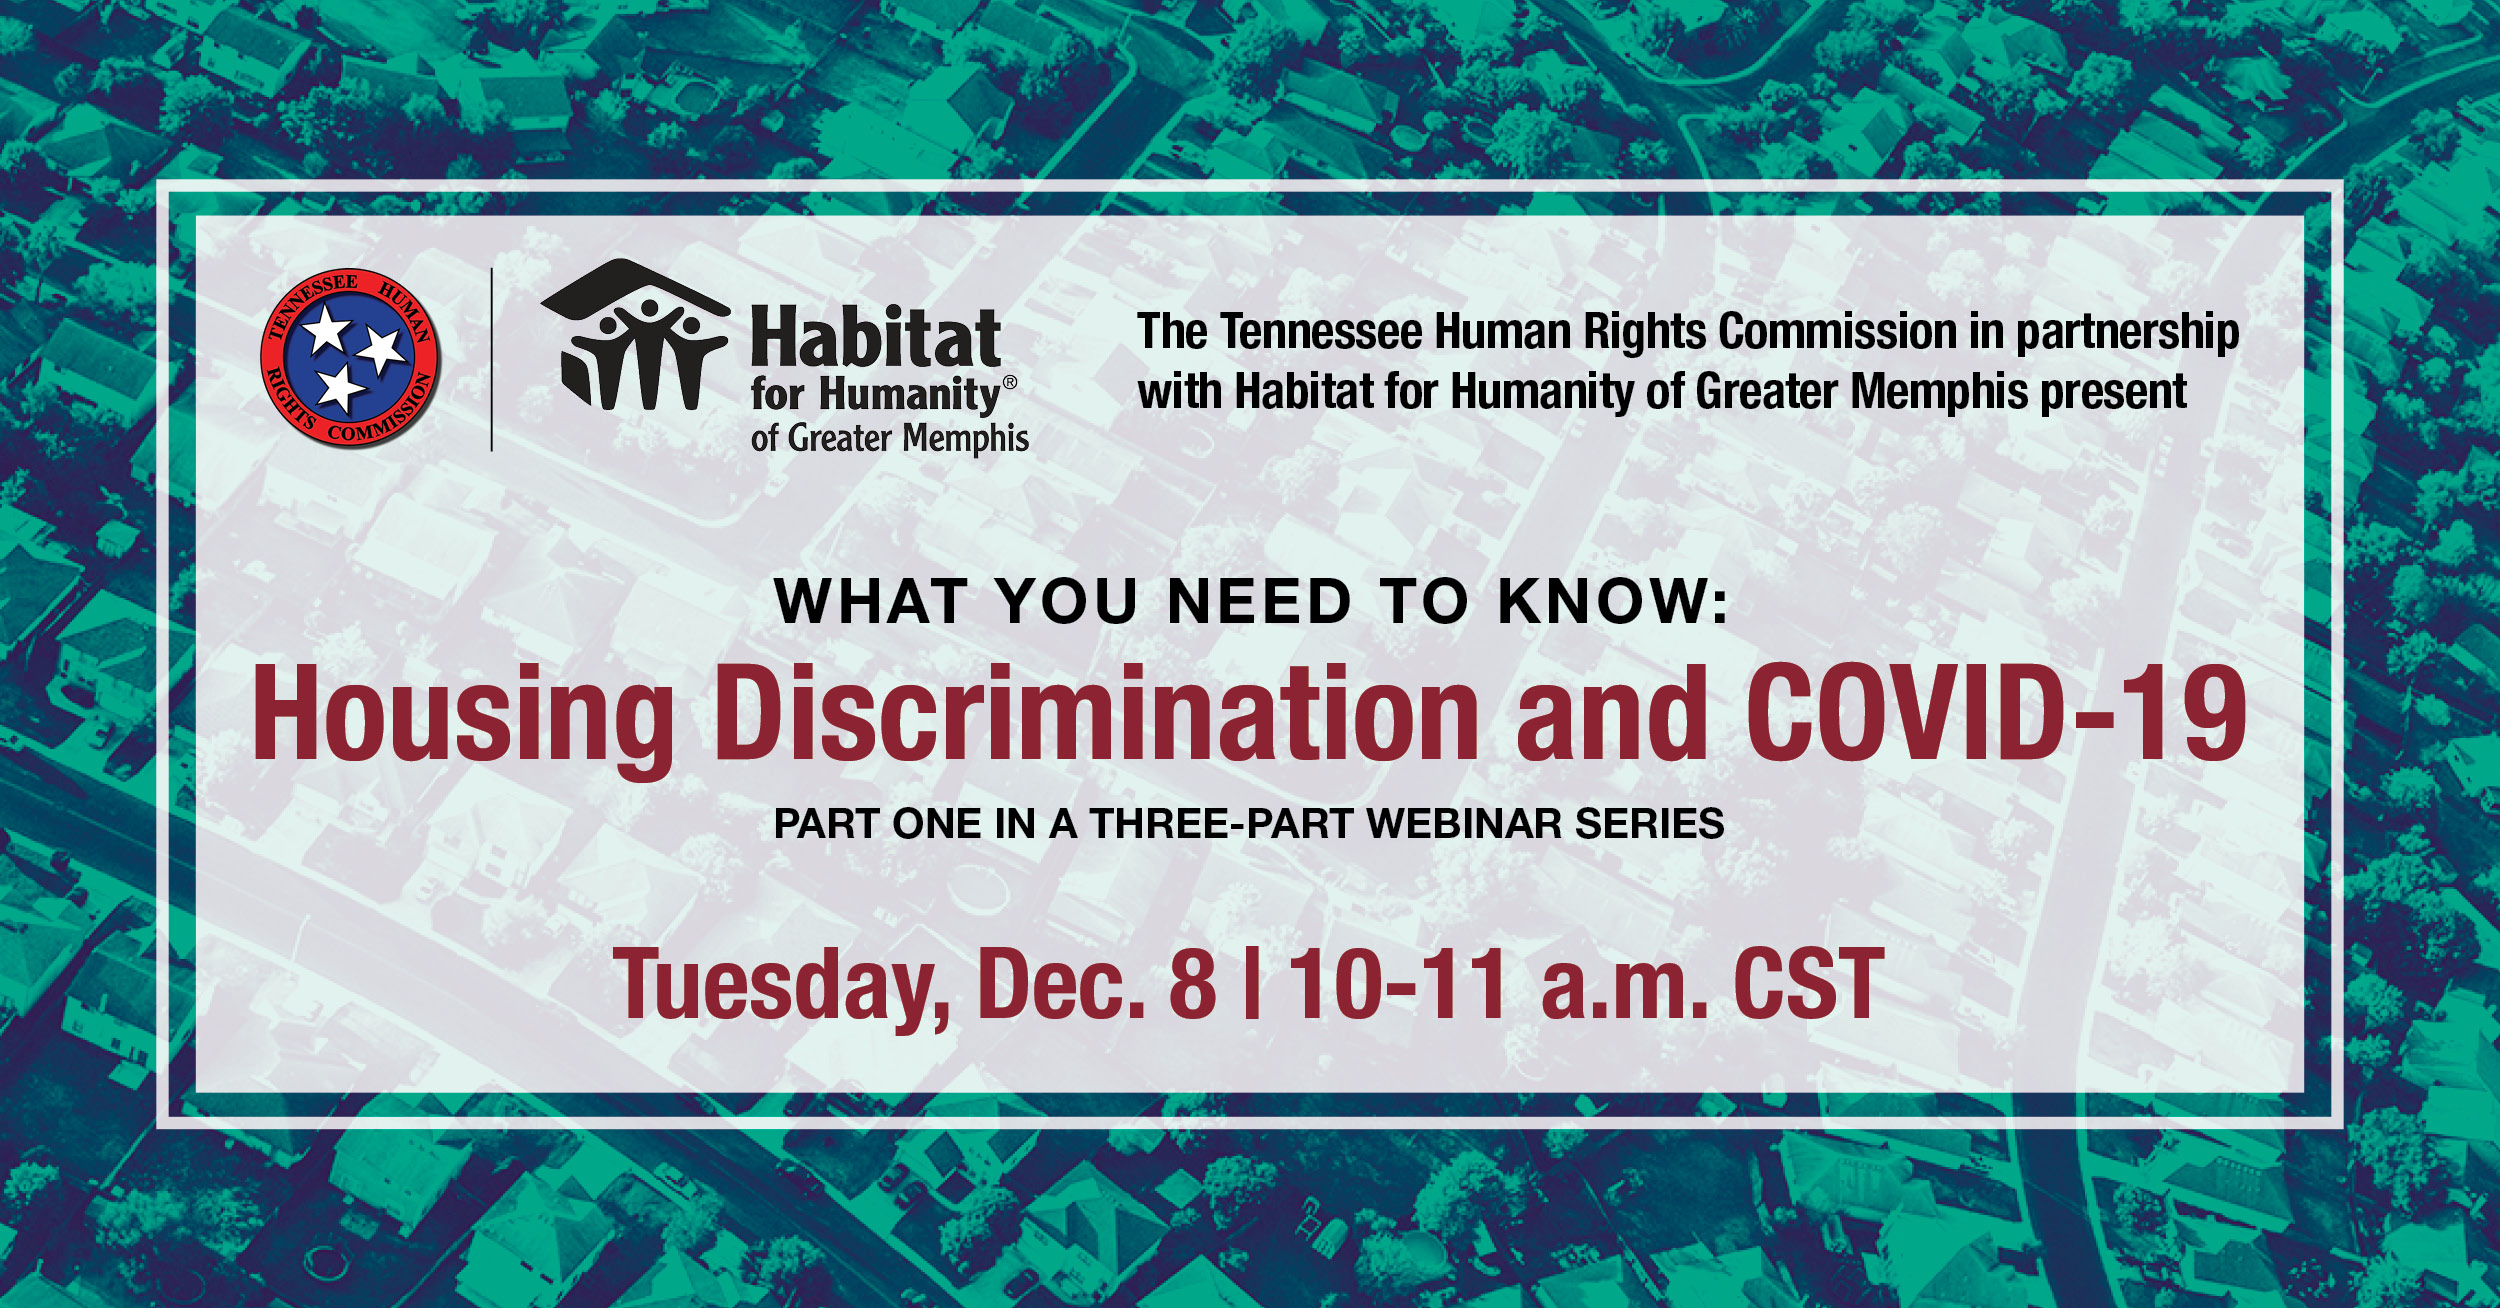 Visual banner sharing information about The Tennessee Human Rights Commission in partnership with Habitat for Humanity of Greater Memphis presenting What You Need to Know: Housing Discrimination and COVID-19, part one of a three-part webinar series on Tuesday, Dec. 8 from 10 to 11 a.m. Central Standard TIme.